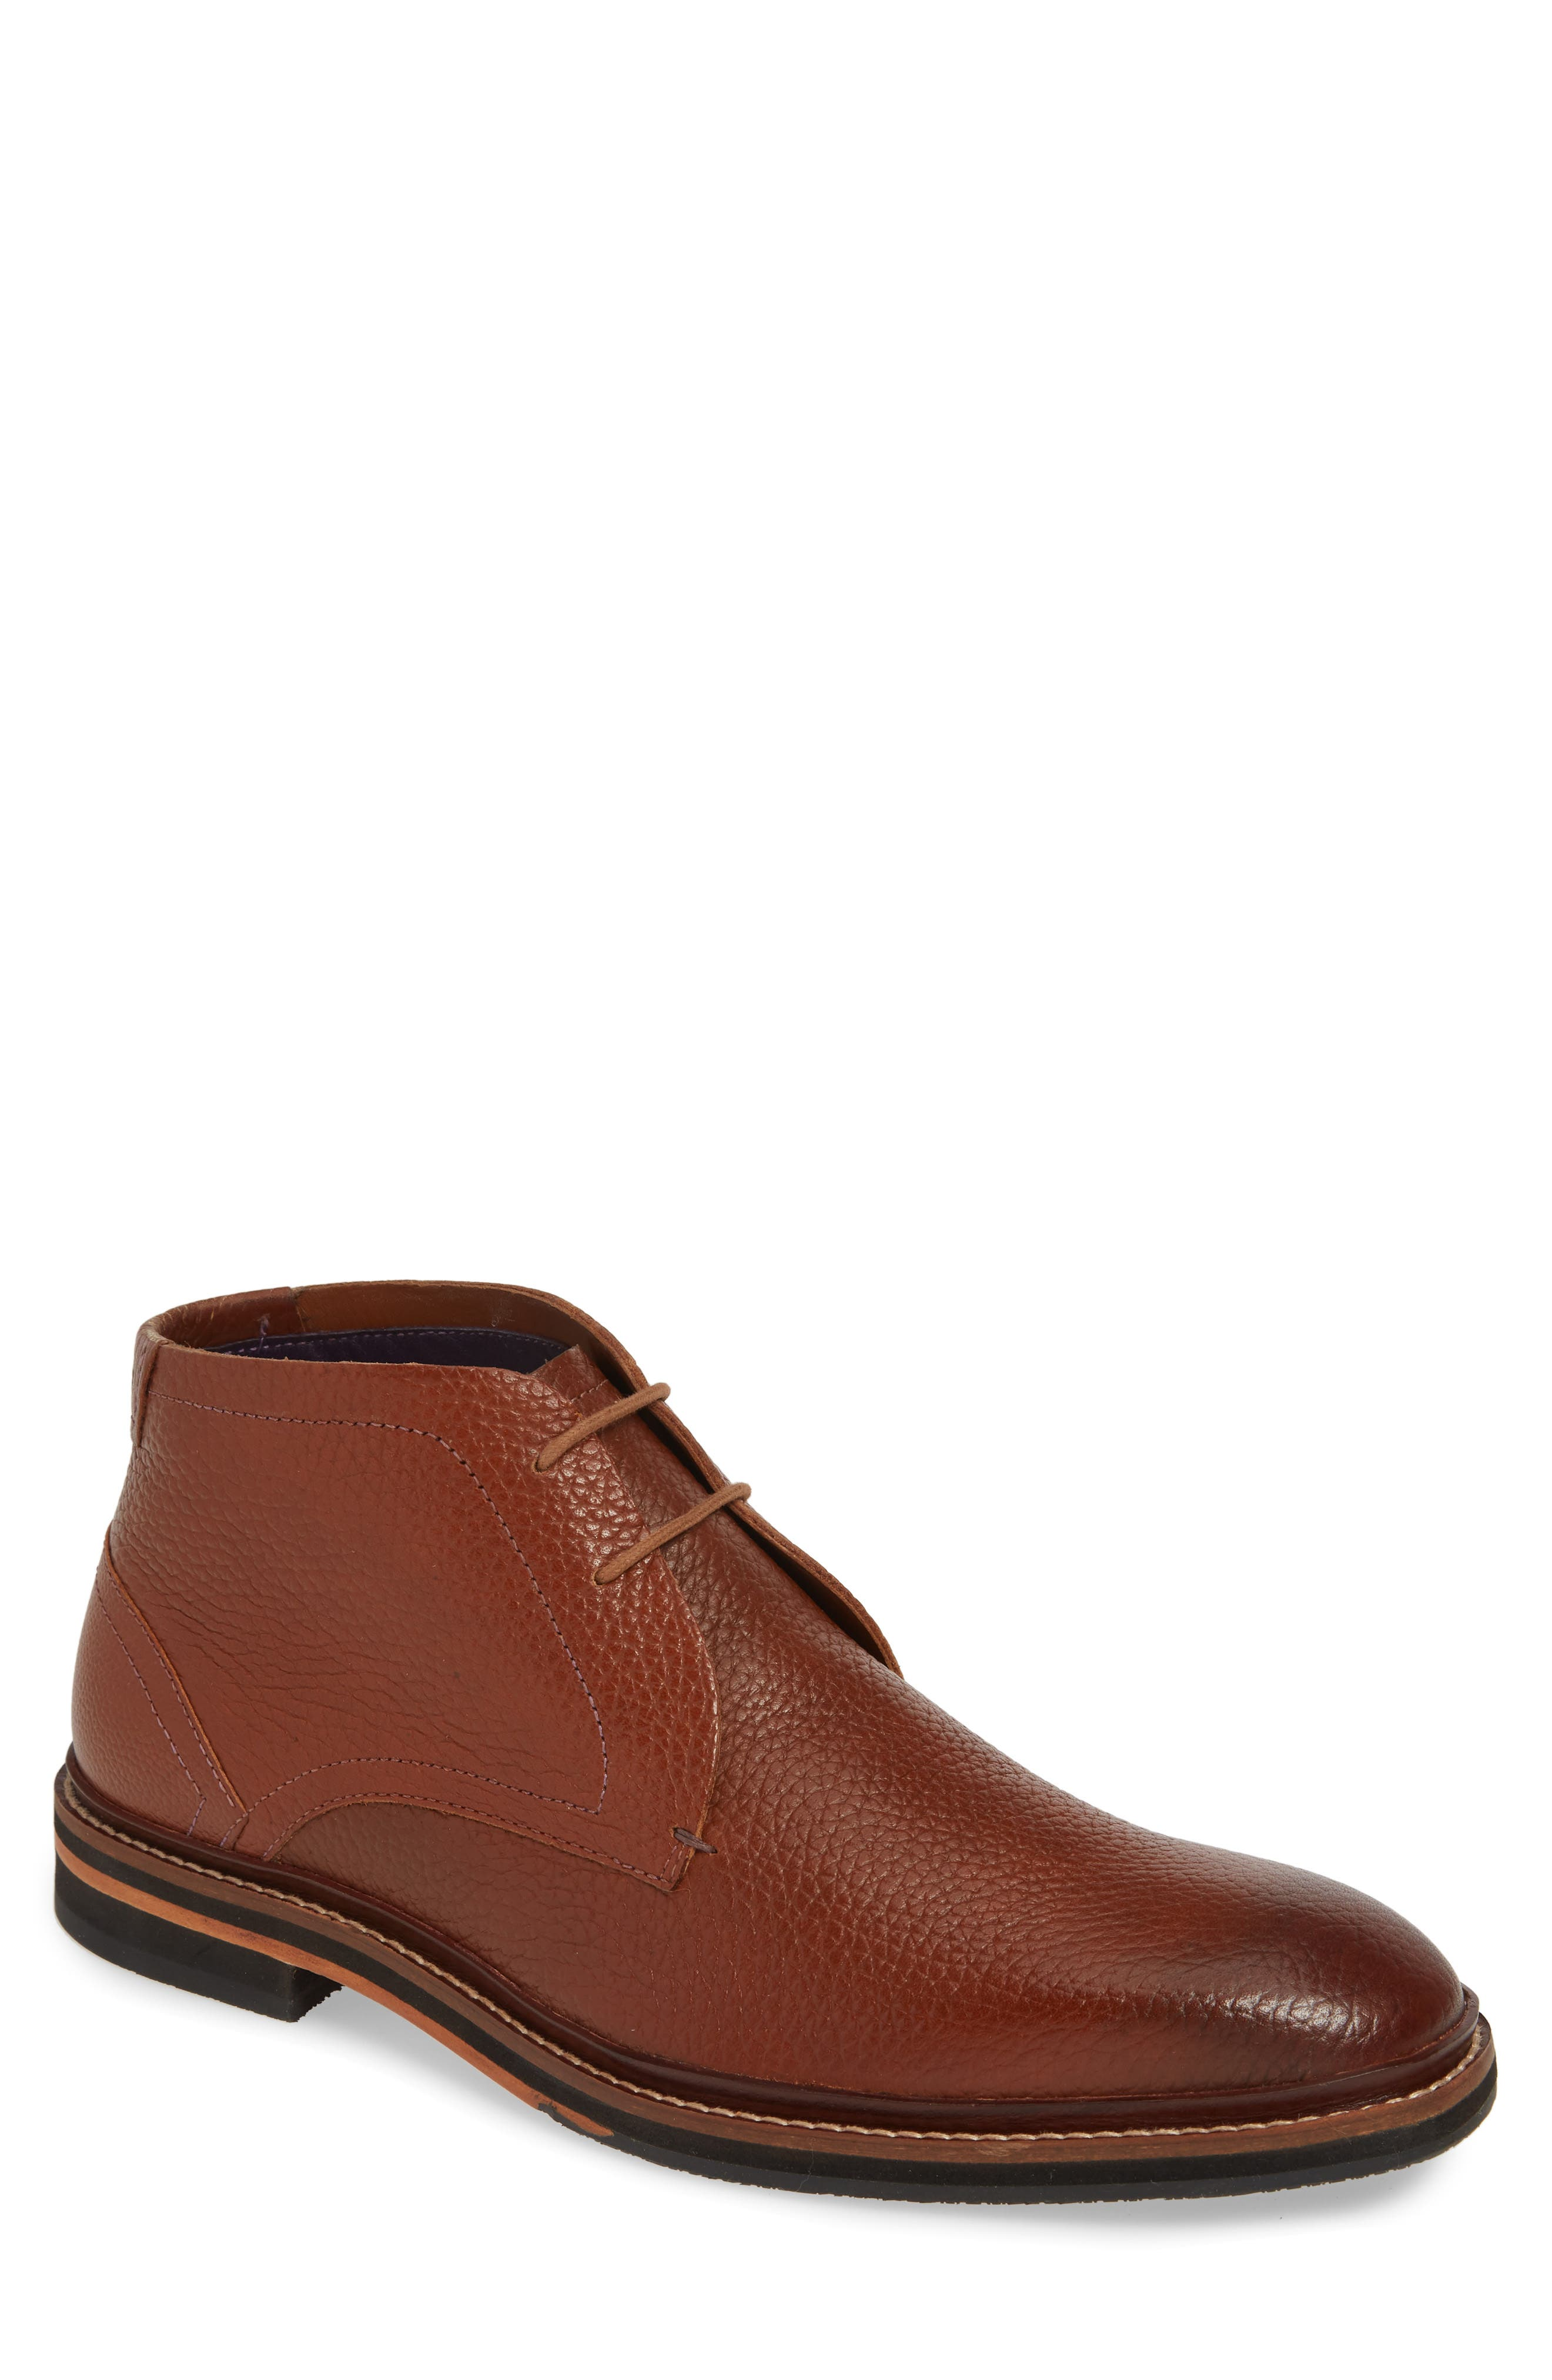 Ted Baker London Corans Chukka Boot, Brown